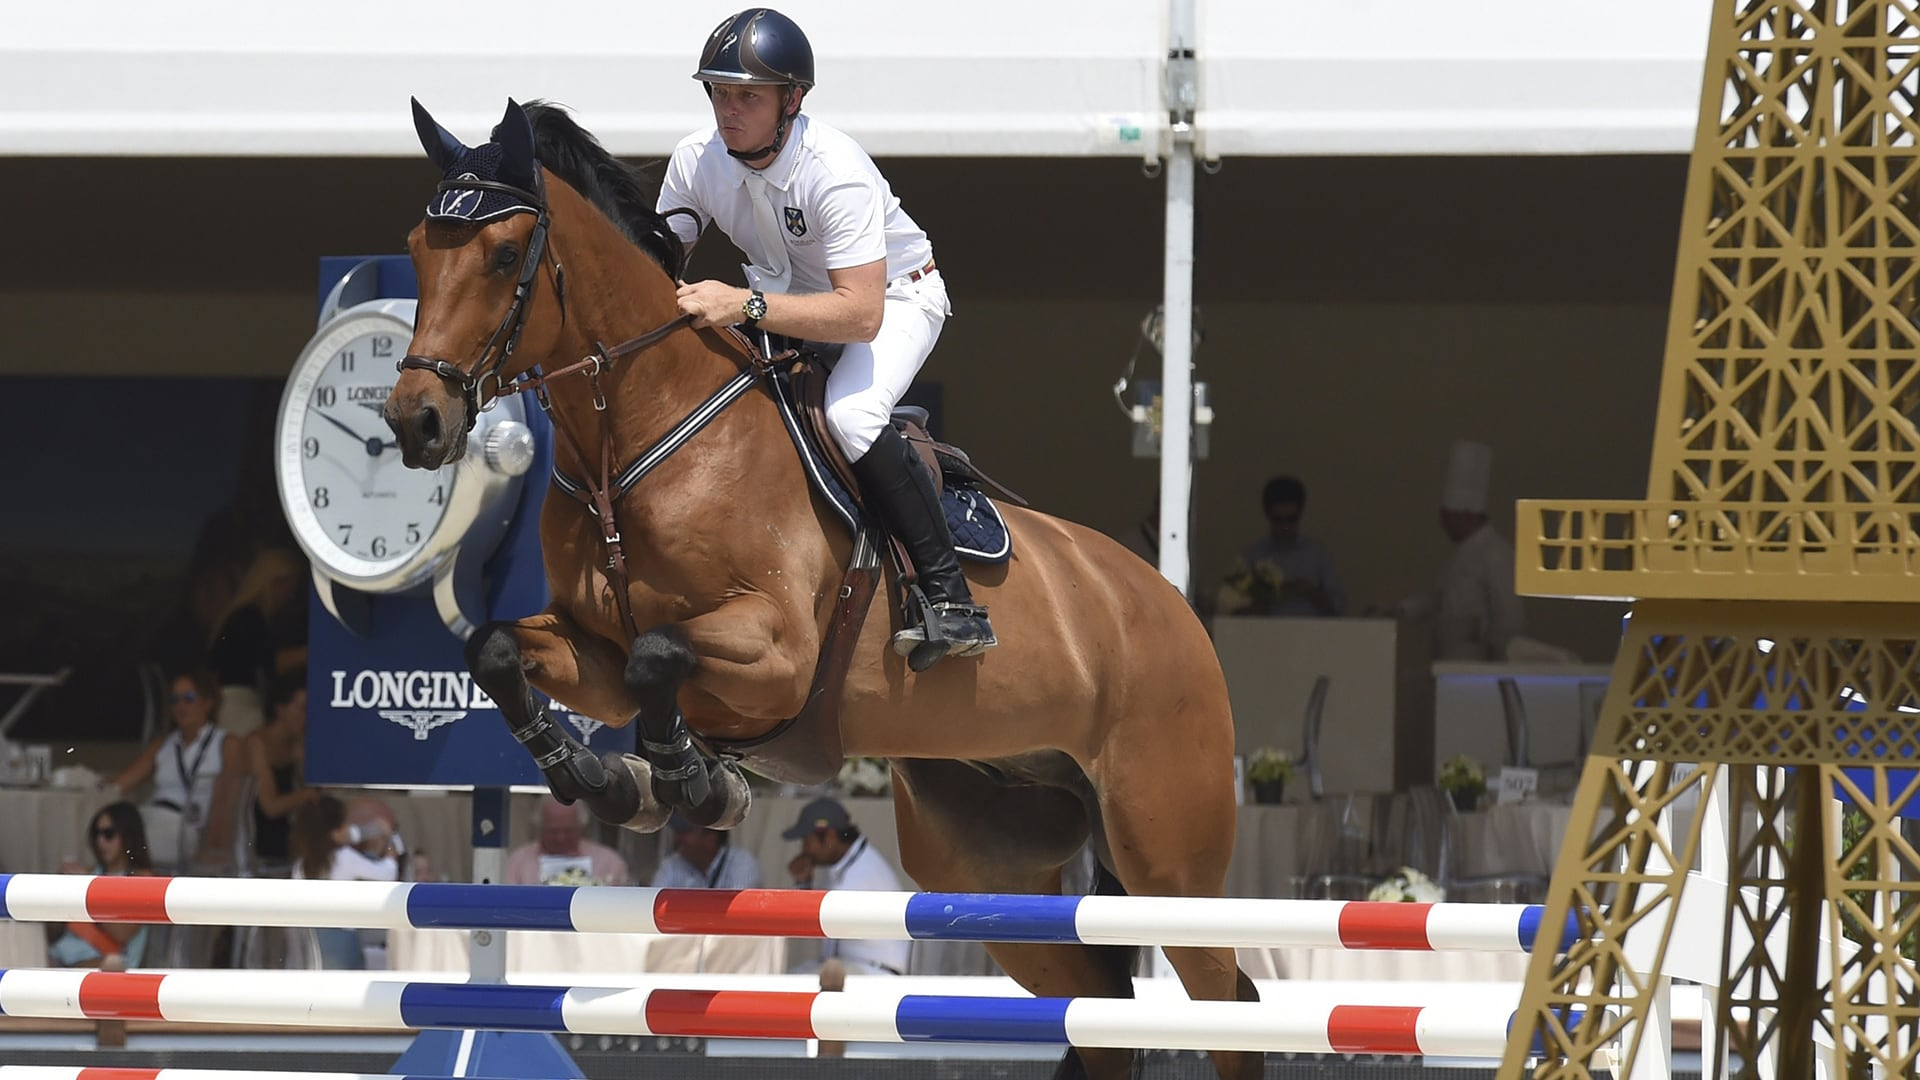 Image for Australian equestrian Jamie Kermond tests positive for cocaine, suspended from Olympics